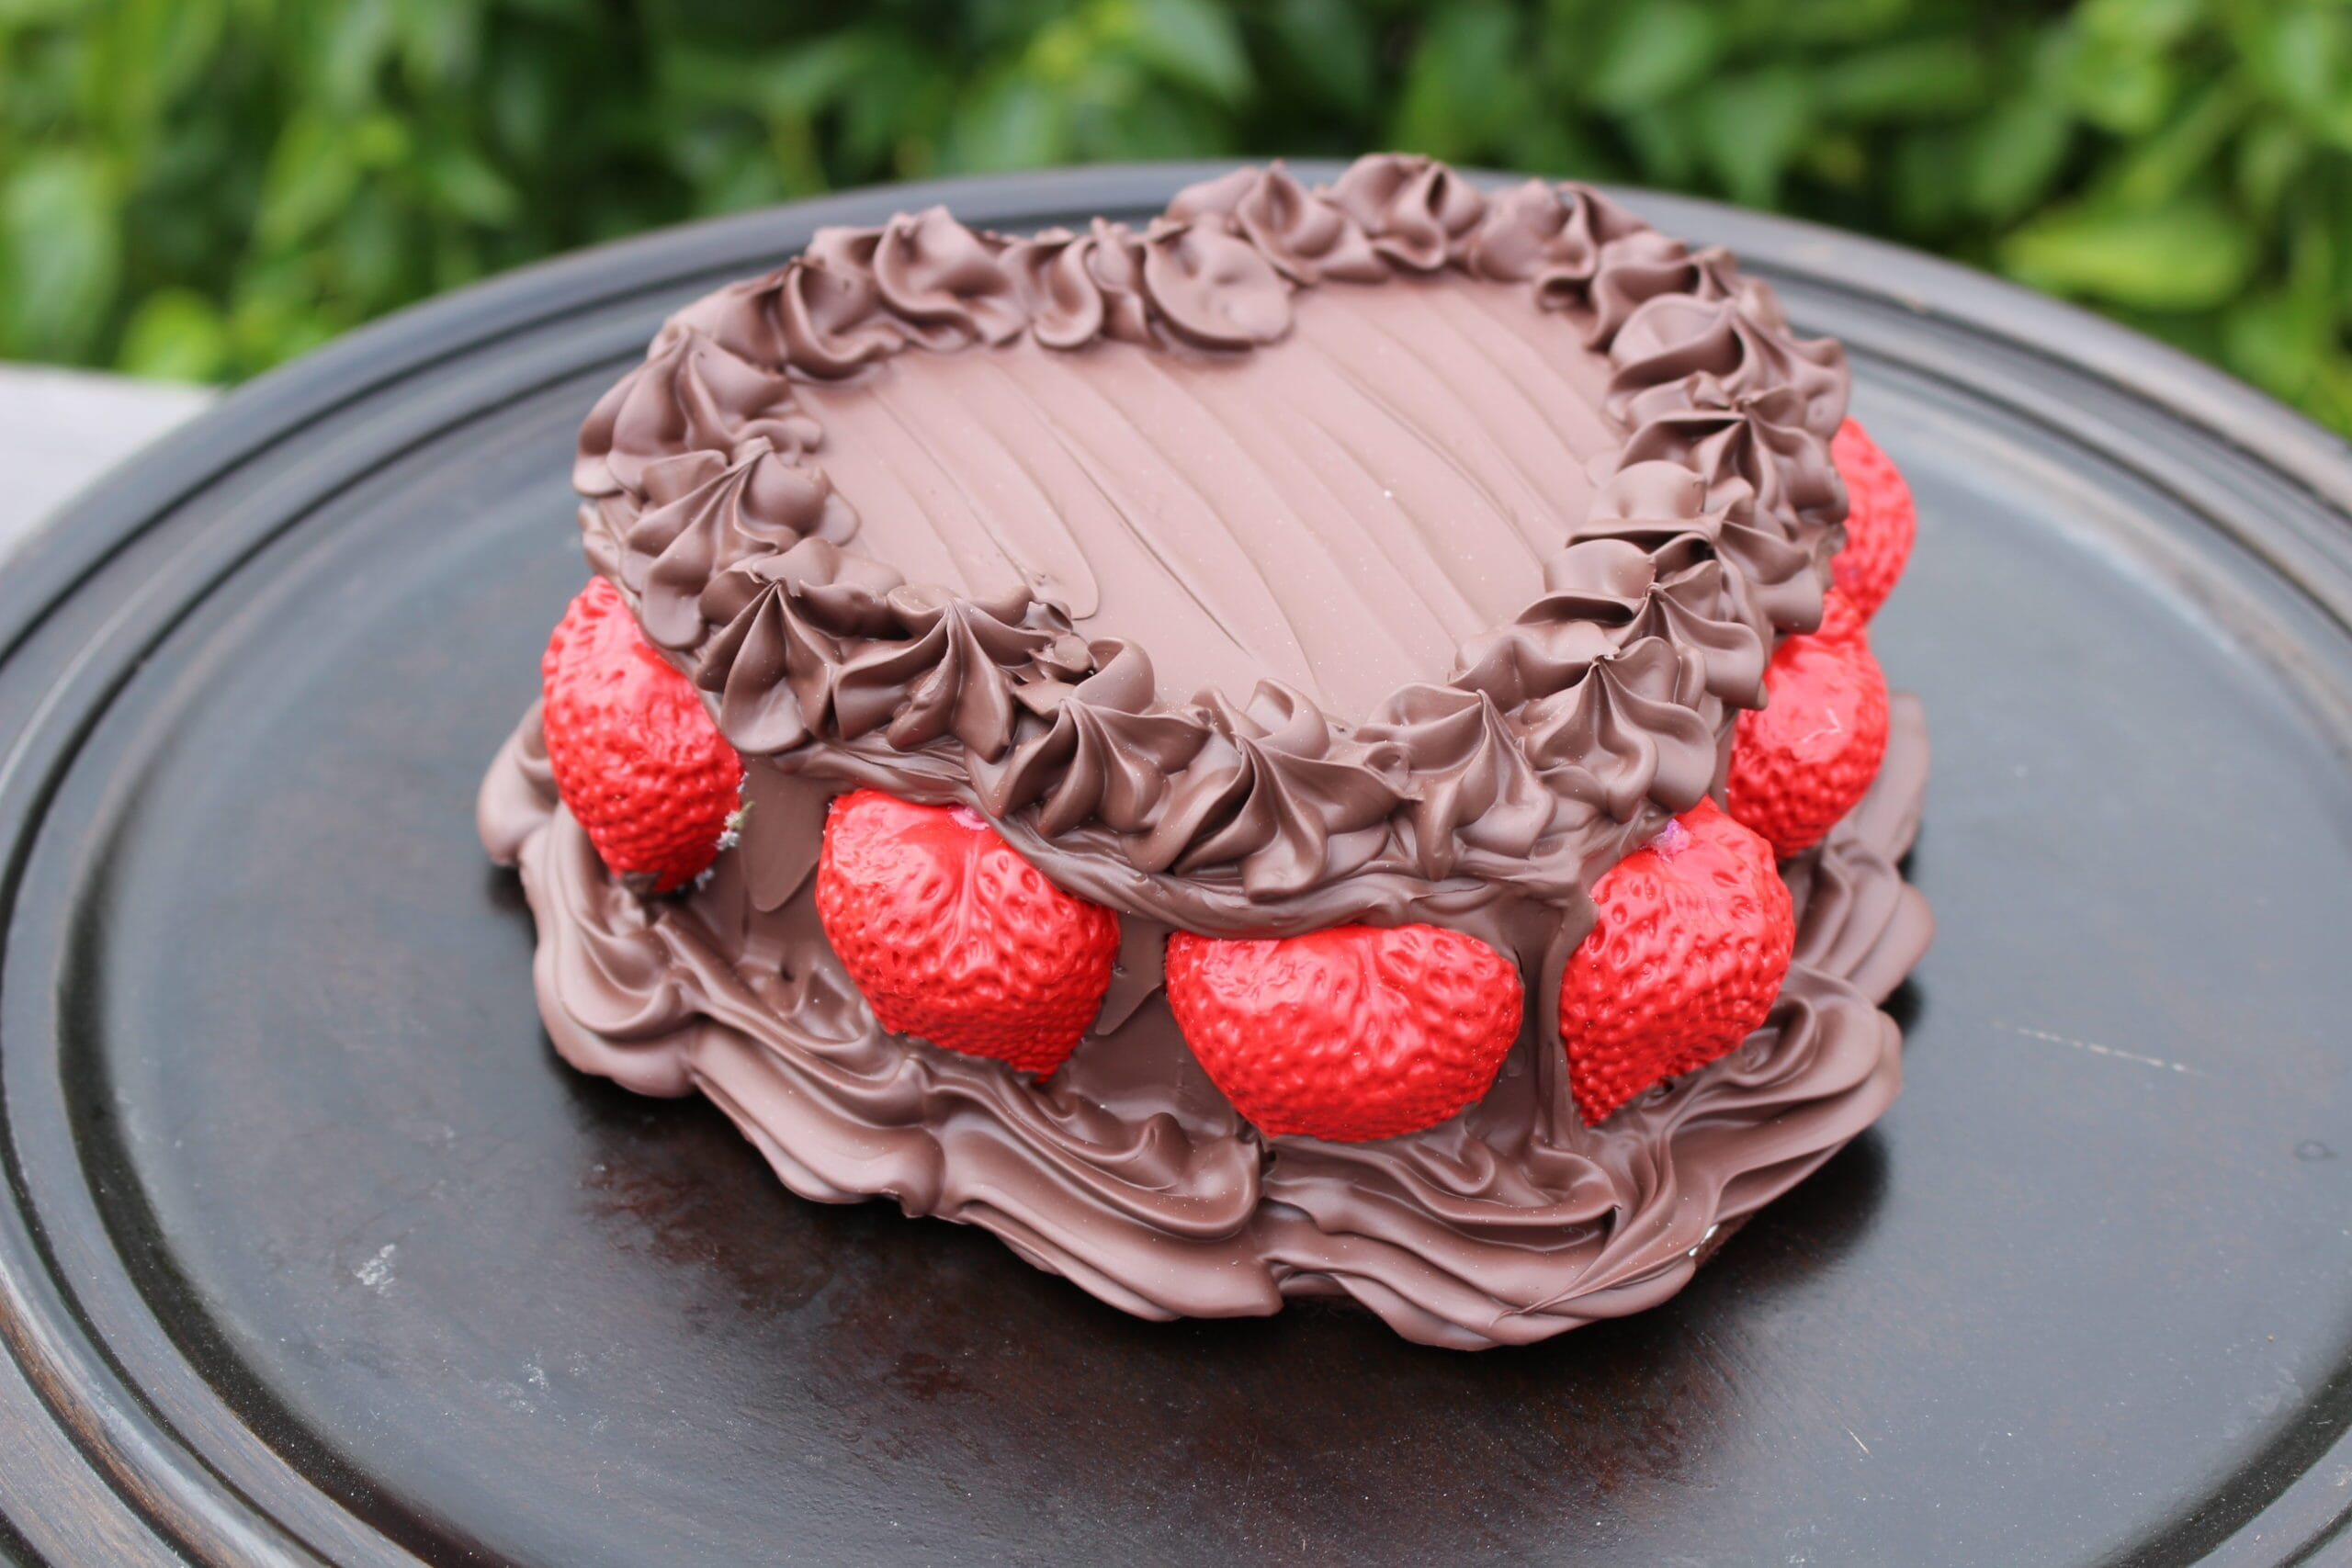 Fake Chocolate Frosted Heart Cake